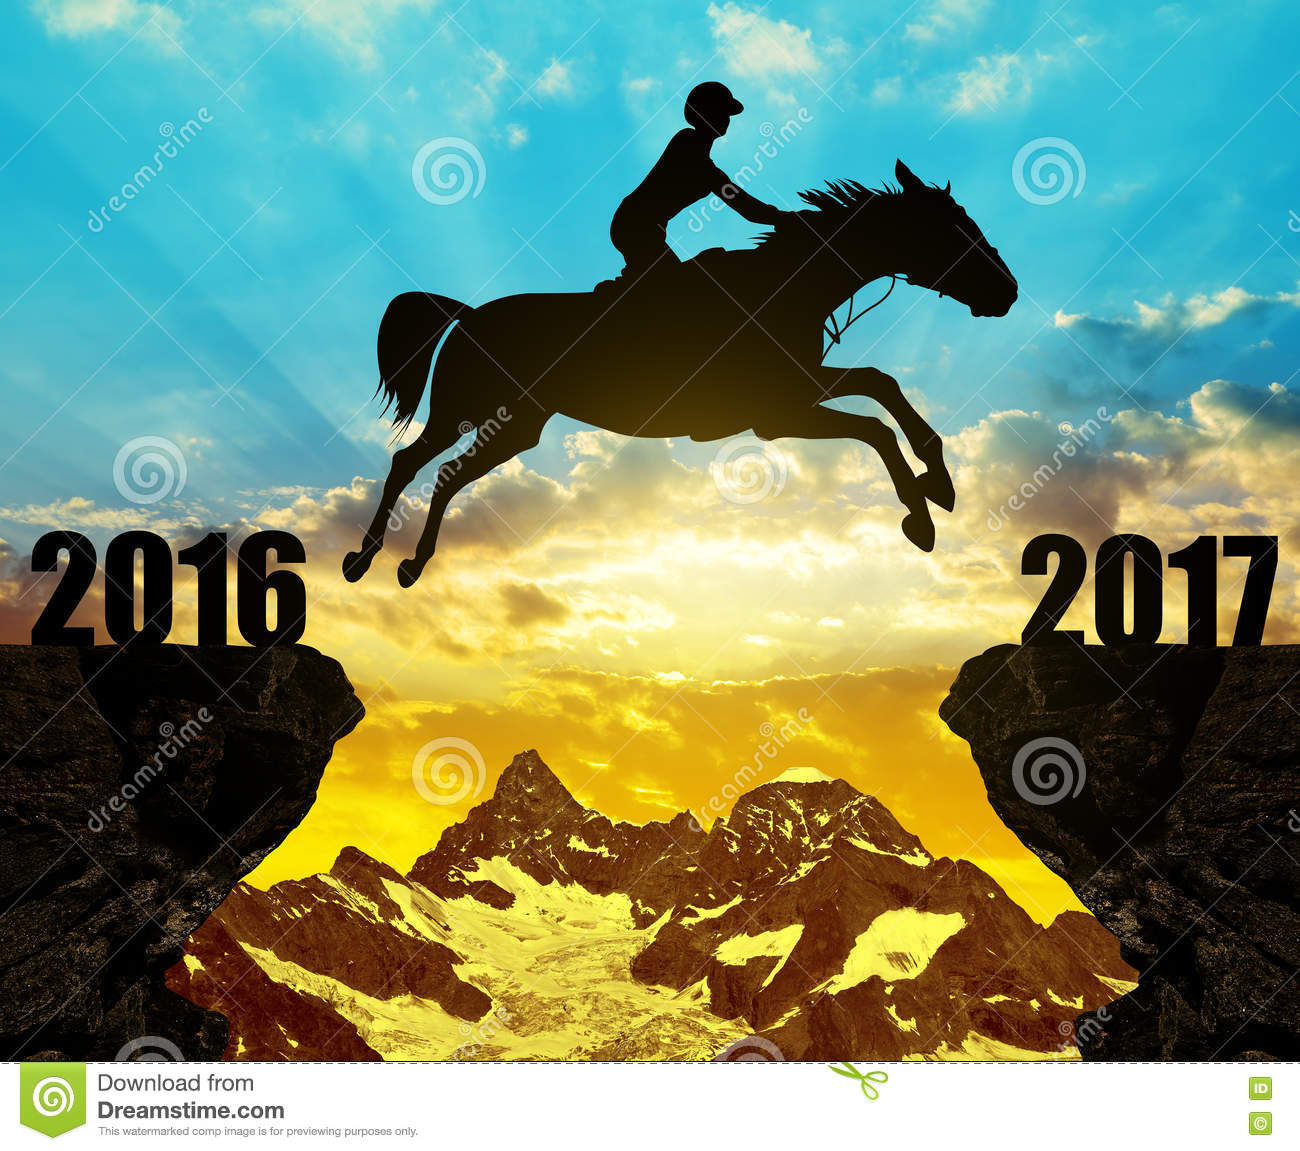 The Rider On The Horse Jumping Into The New Year 2017 ...